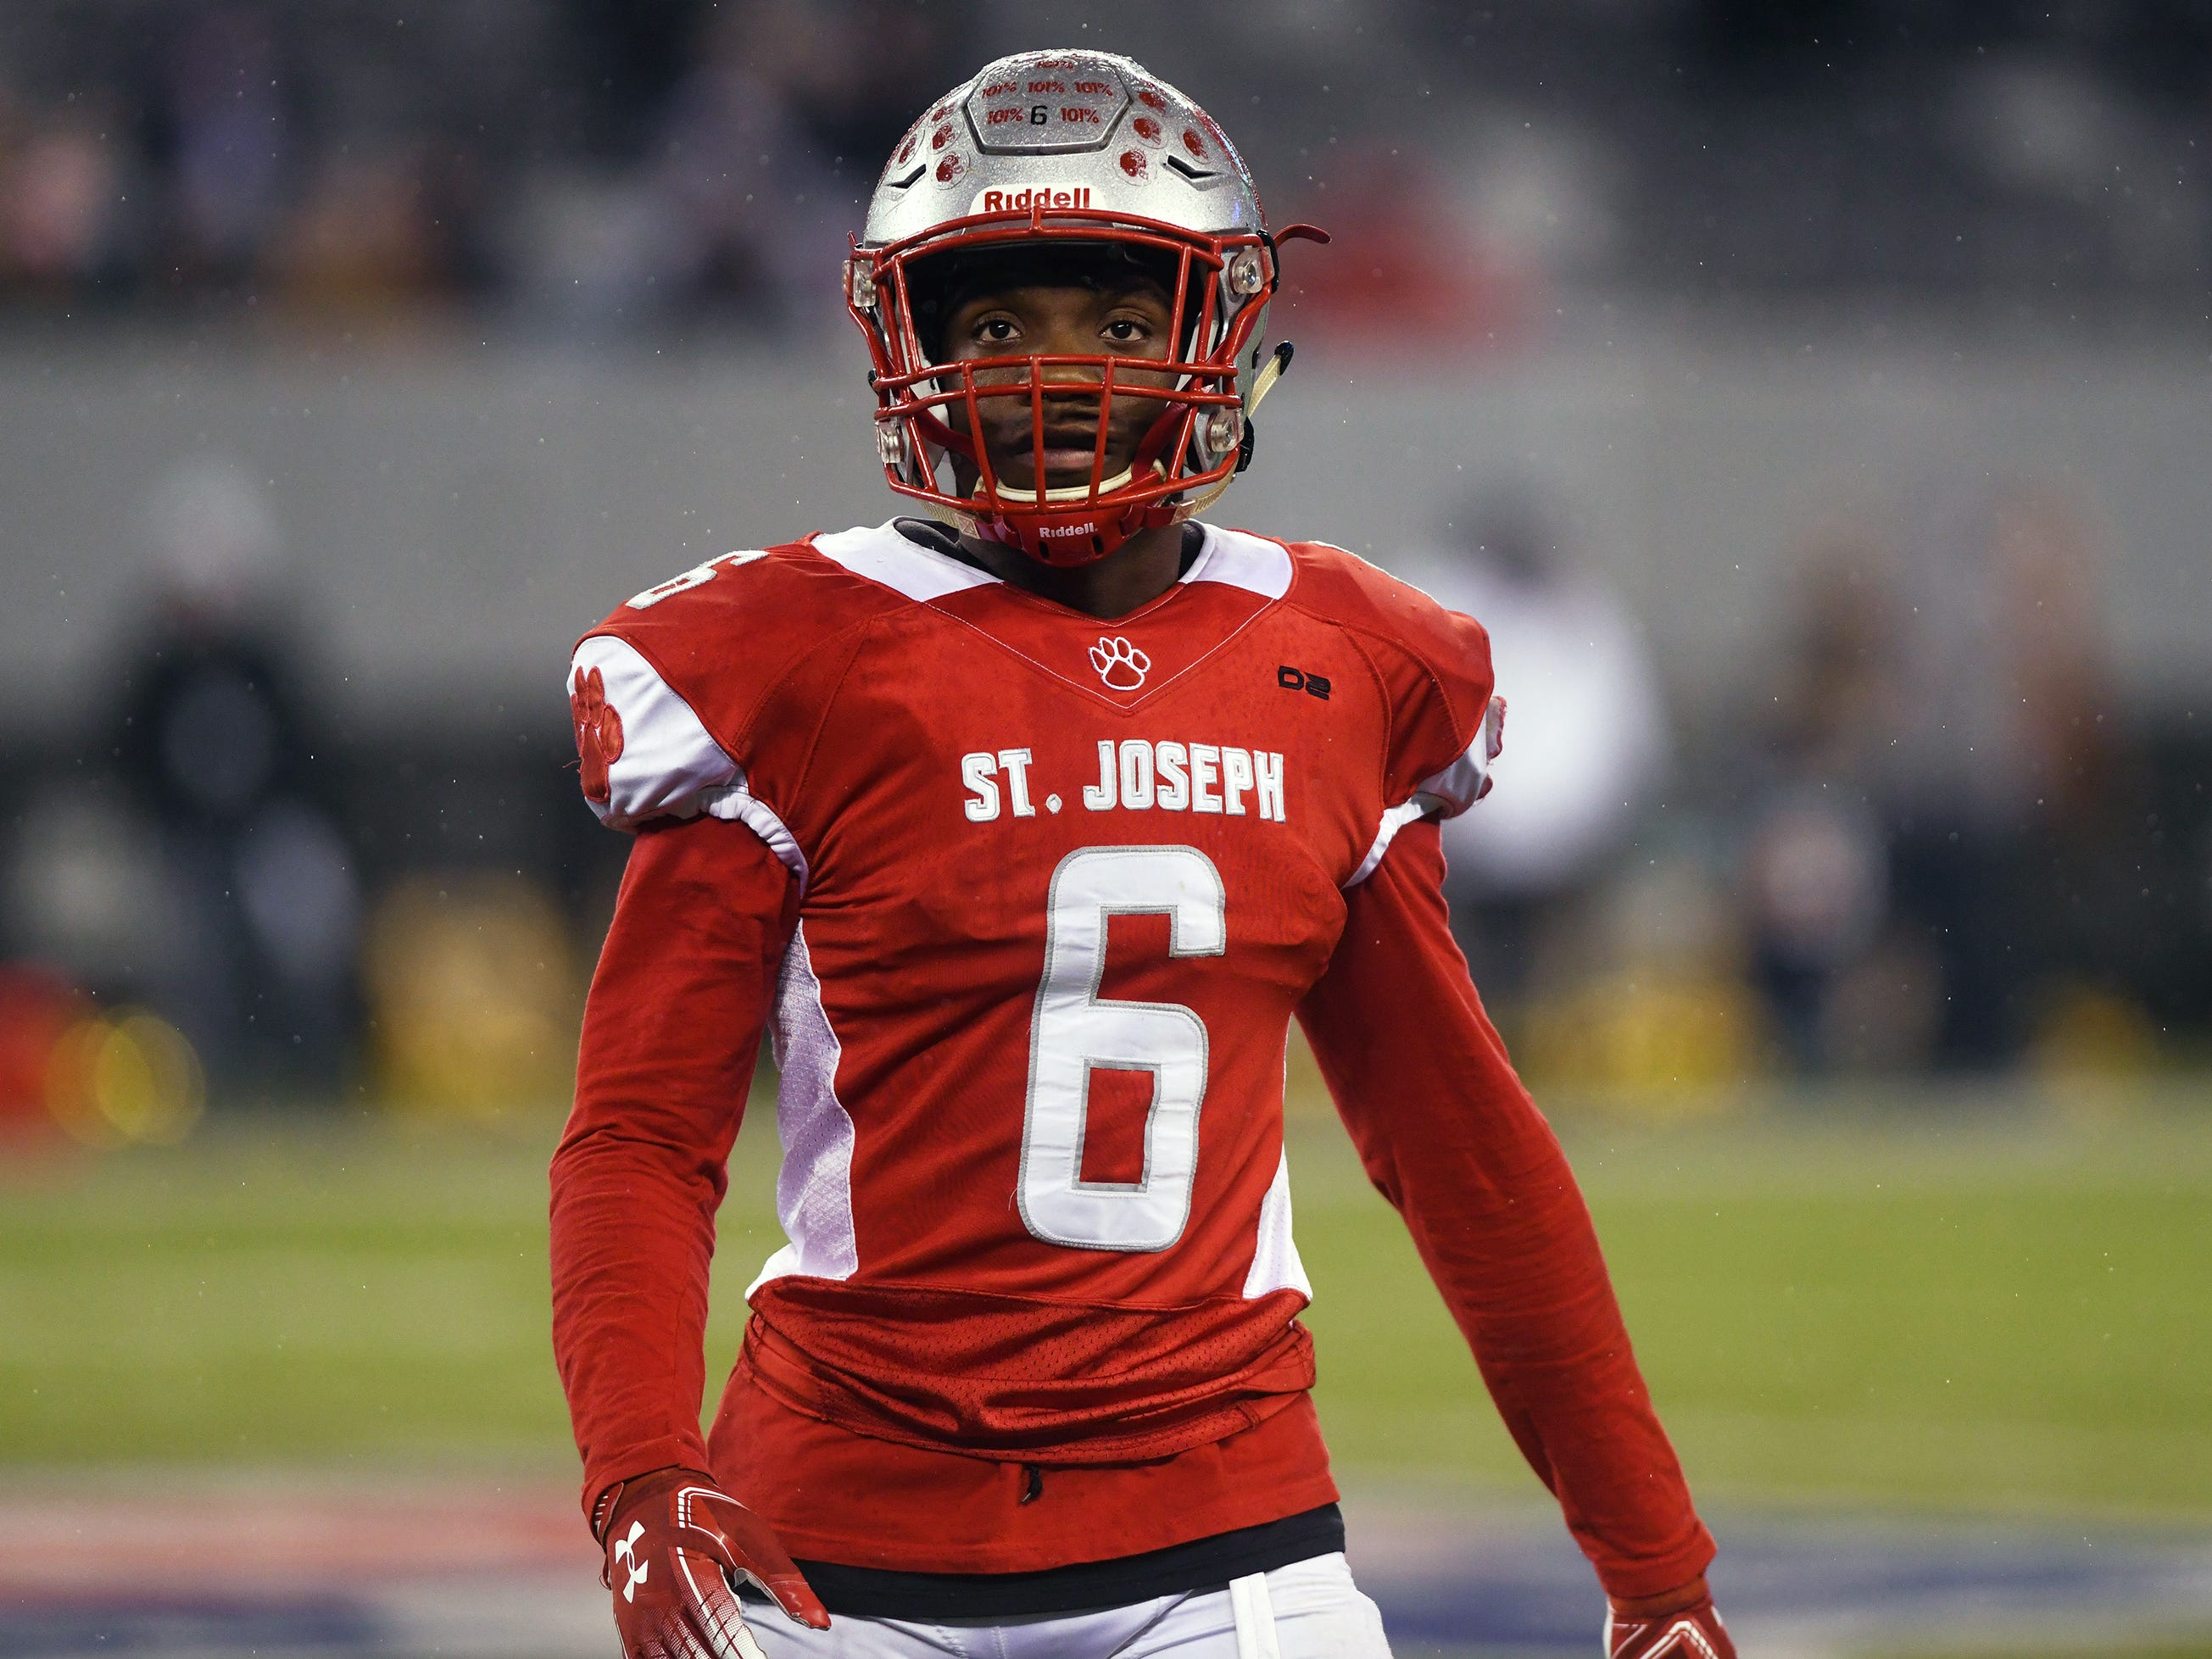 St. Joseph's Nate Johnson checks the sideline during a game against Holy Spirit. The Wildcats topped the Spartans, 41-22 at MetLife Stadium on Friday, November 30, 2018.